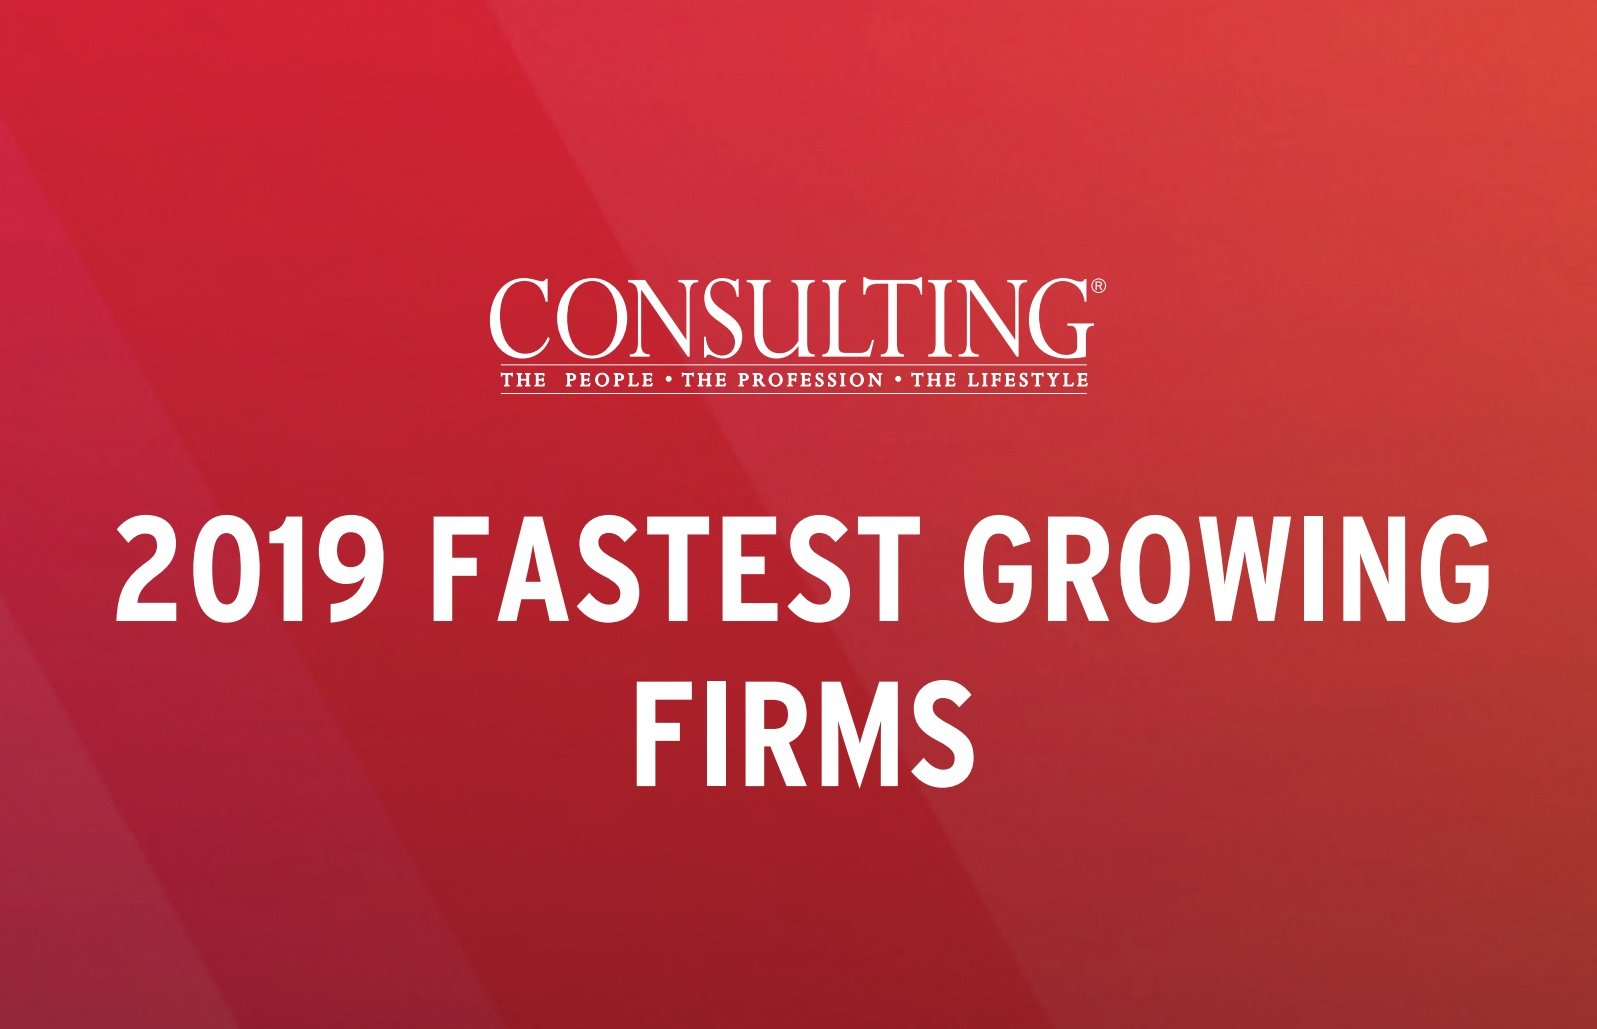 2019 Fastest Growing Firms